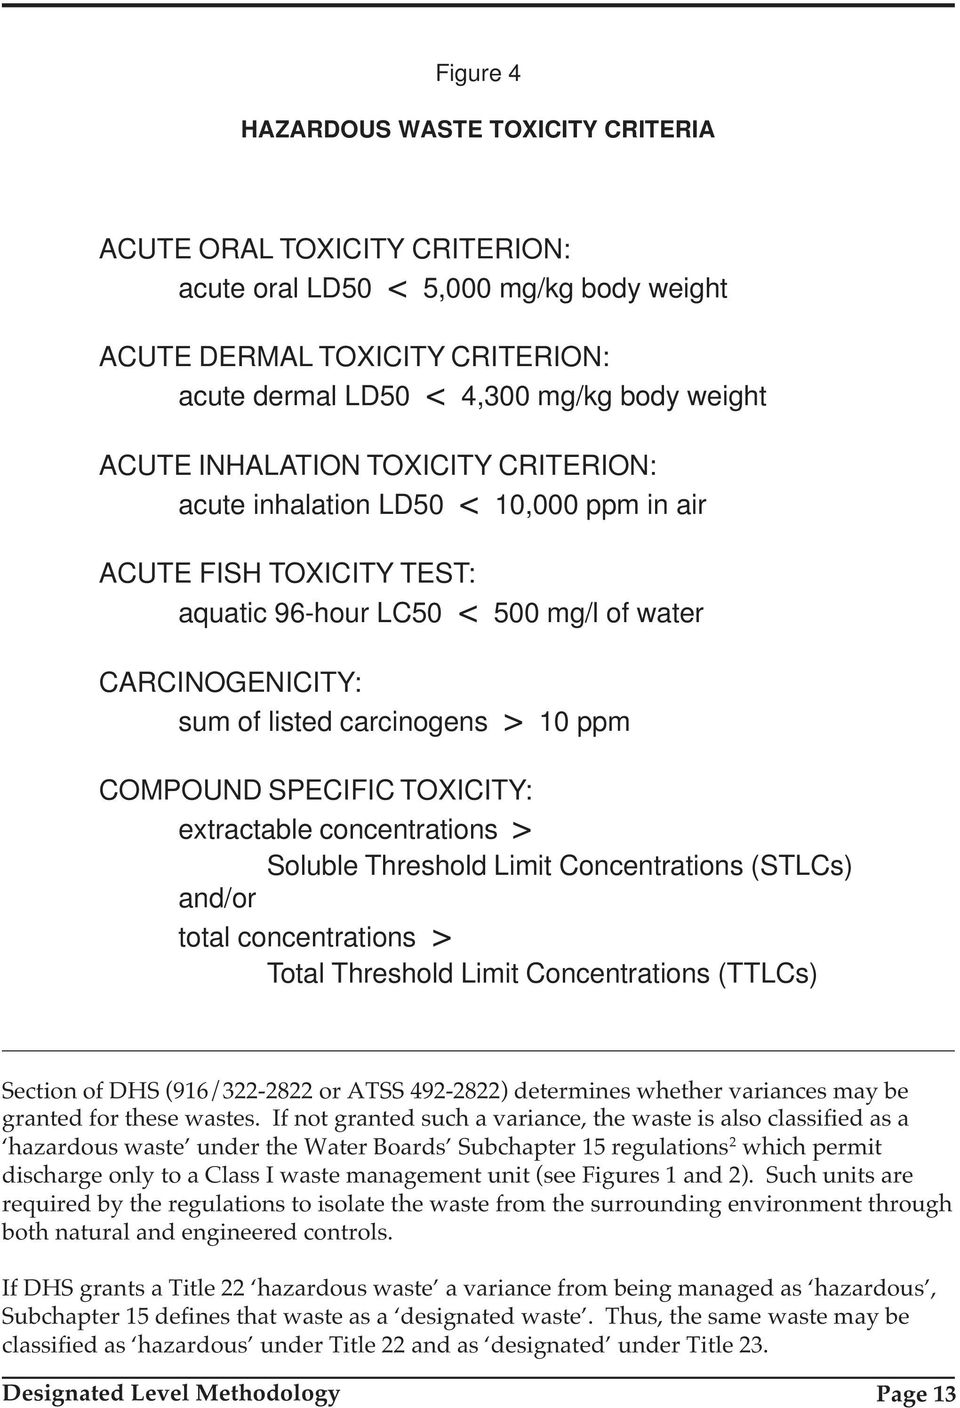 COMPOUND SPECIFIC TOXICITY: extractable concentrations > Soluble Threshold Limit Concentrations (STLCs) and/or total concentrations > Total Threshold Limit Concentrations (TTLCs) Section of DHS